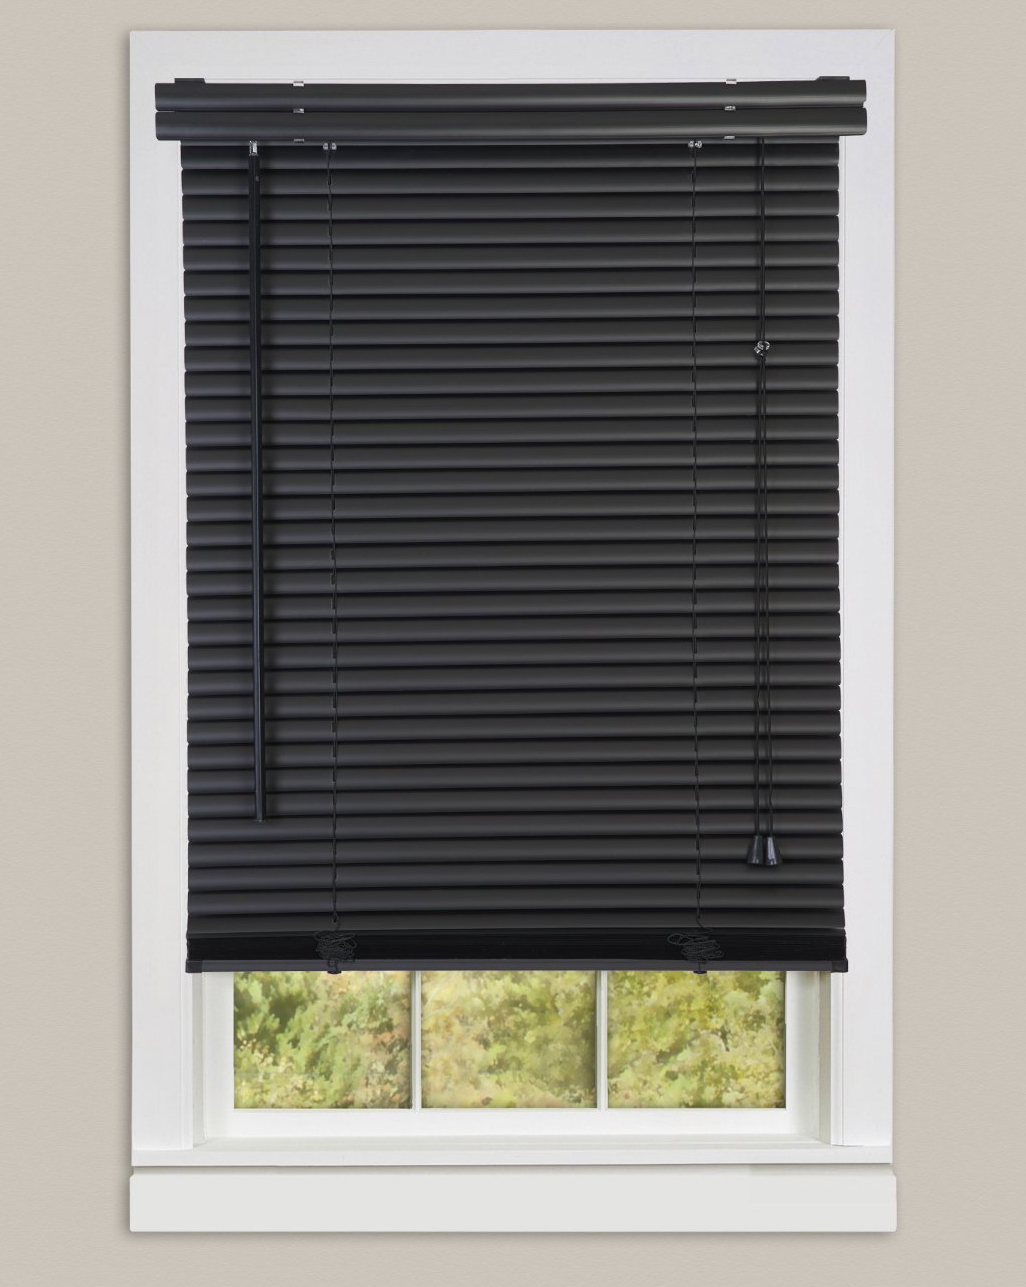 Window Blinds Mini Blinds 1  Slats Black Venetian Vinyl Blind & Window Blinds Mini Blinds 1